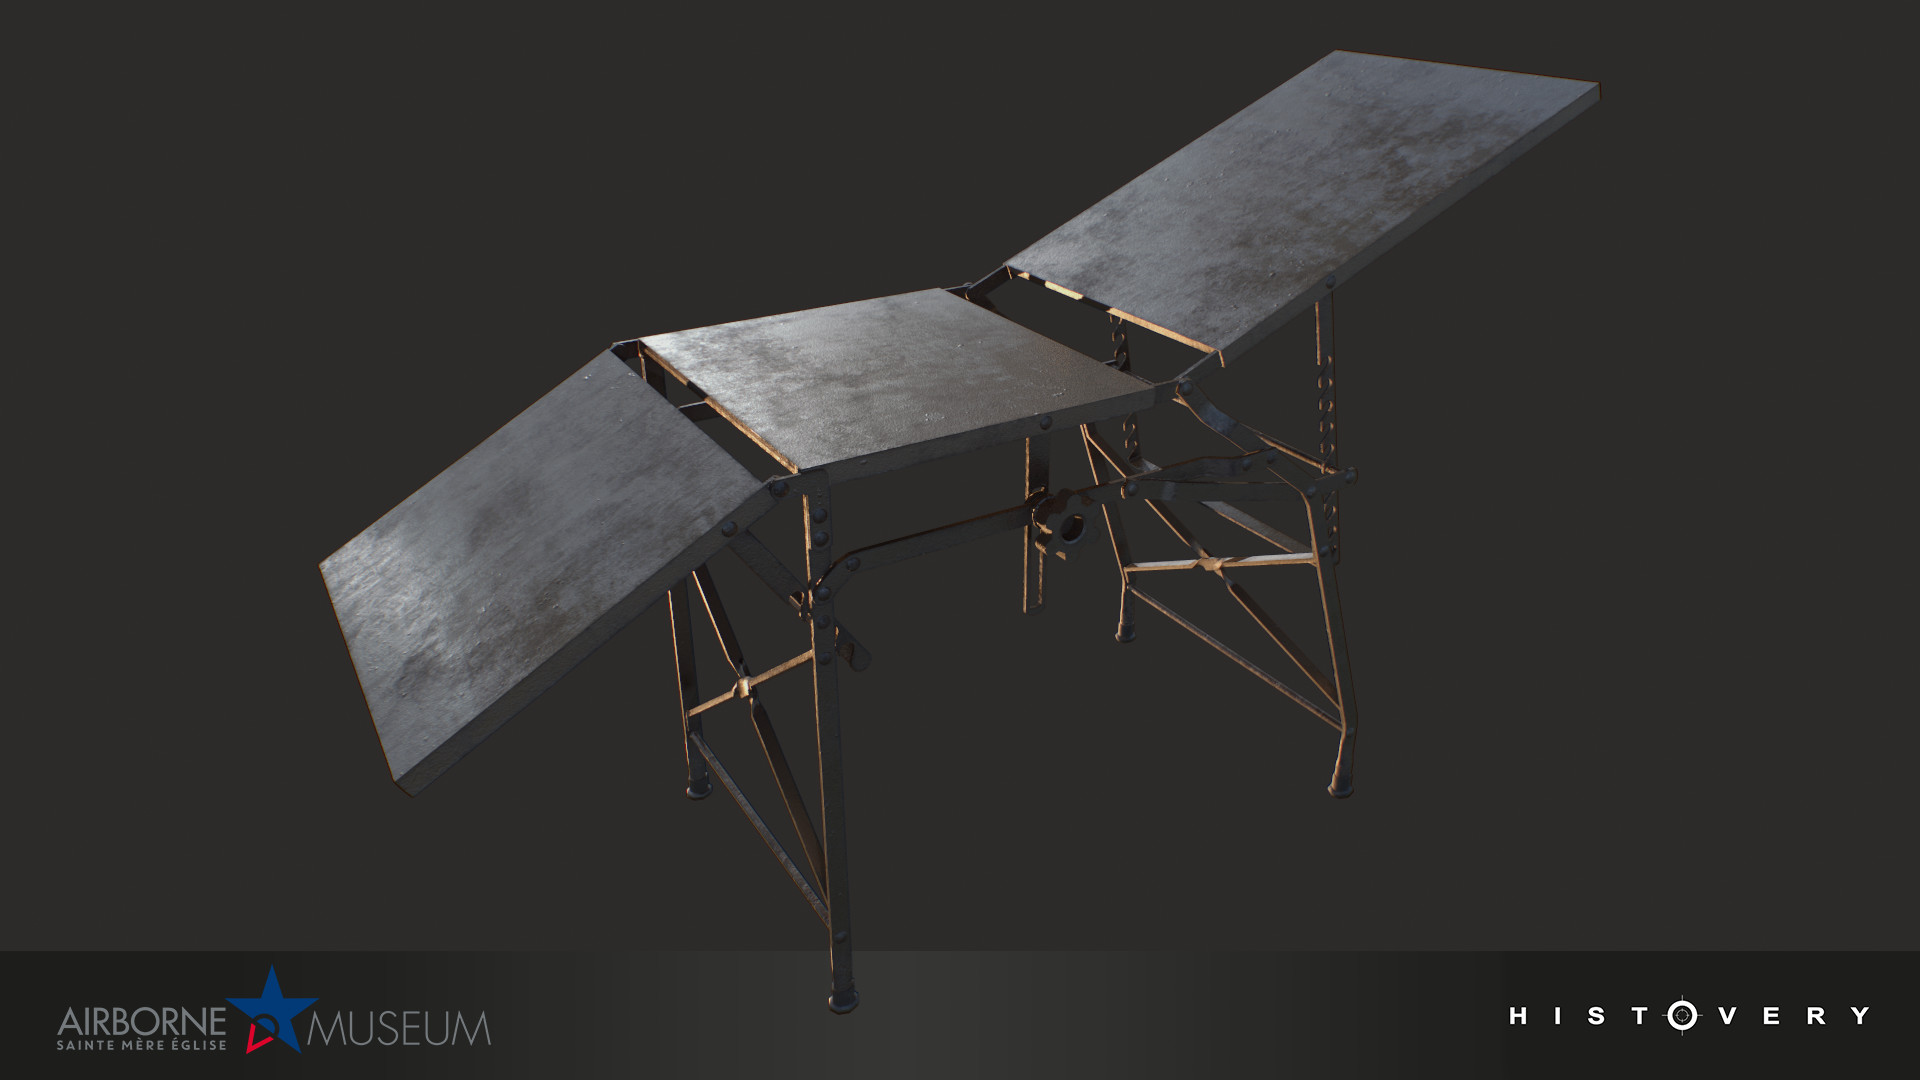 Operating table, which could be adjusted flat or leaning for the patient, or folded up for transport.